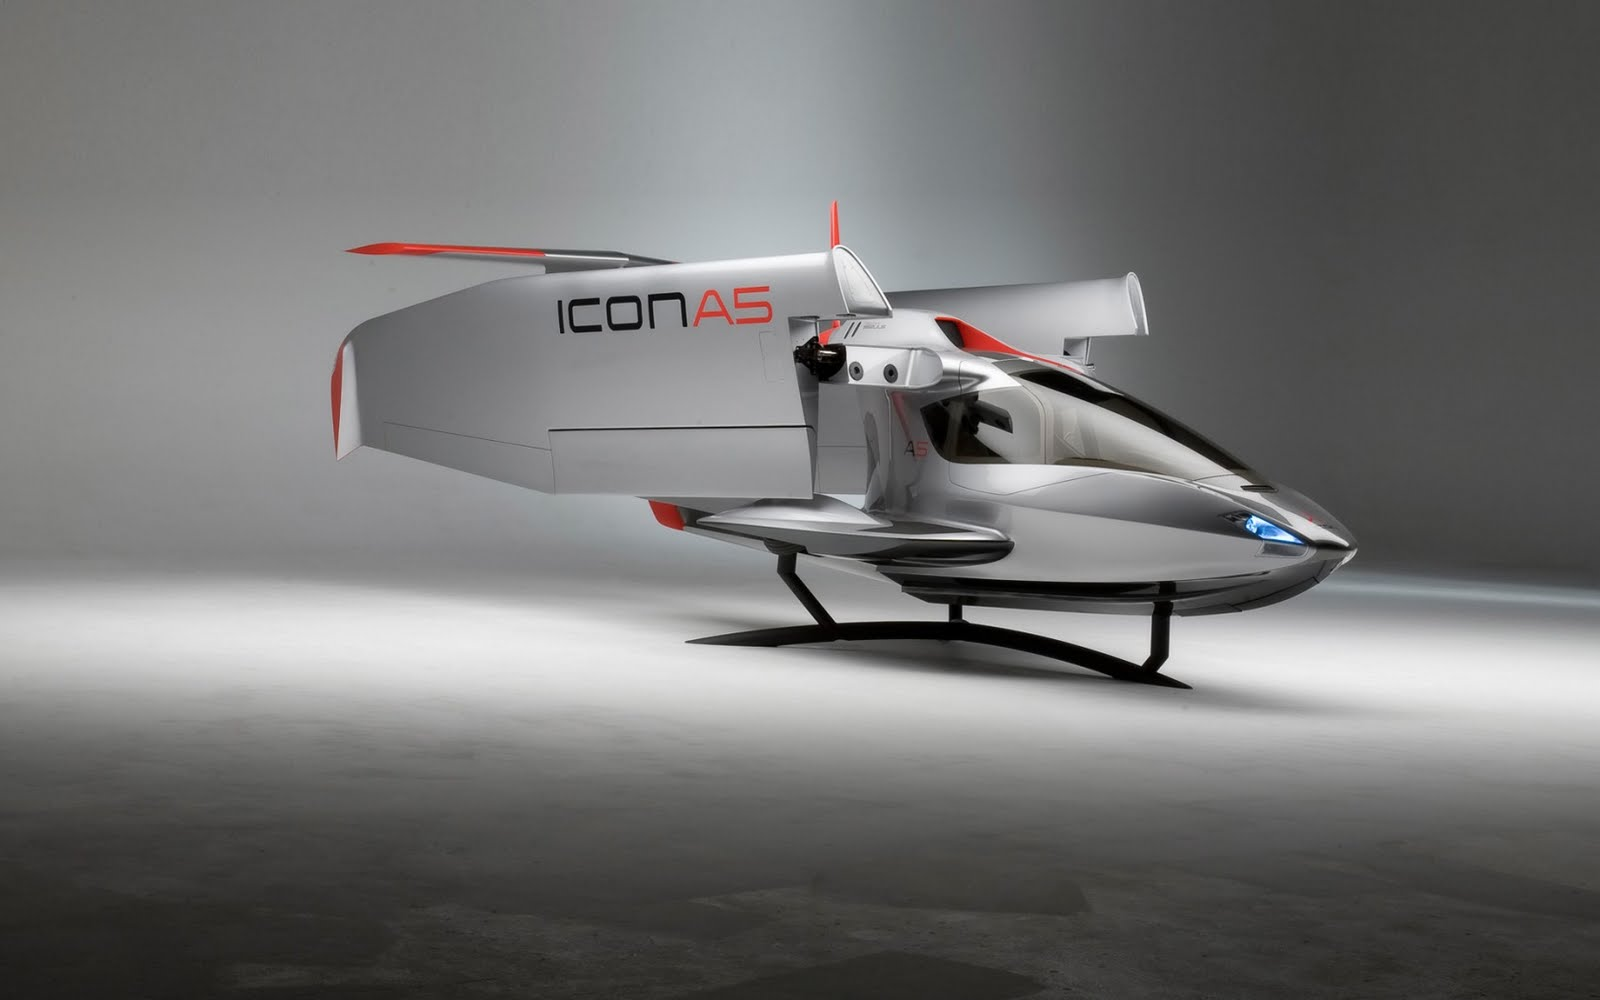 con a5 is a facinating creation of icon aircraft icon a5 is a    Icon A5 Wallpaper